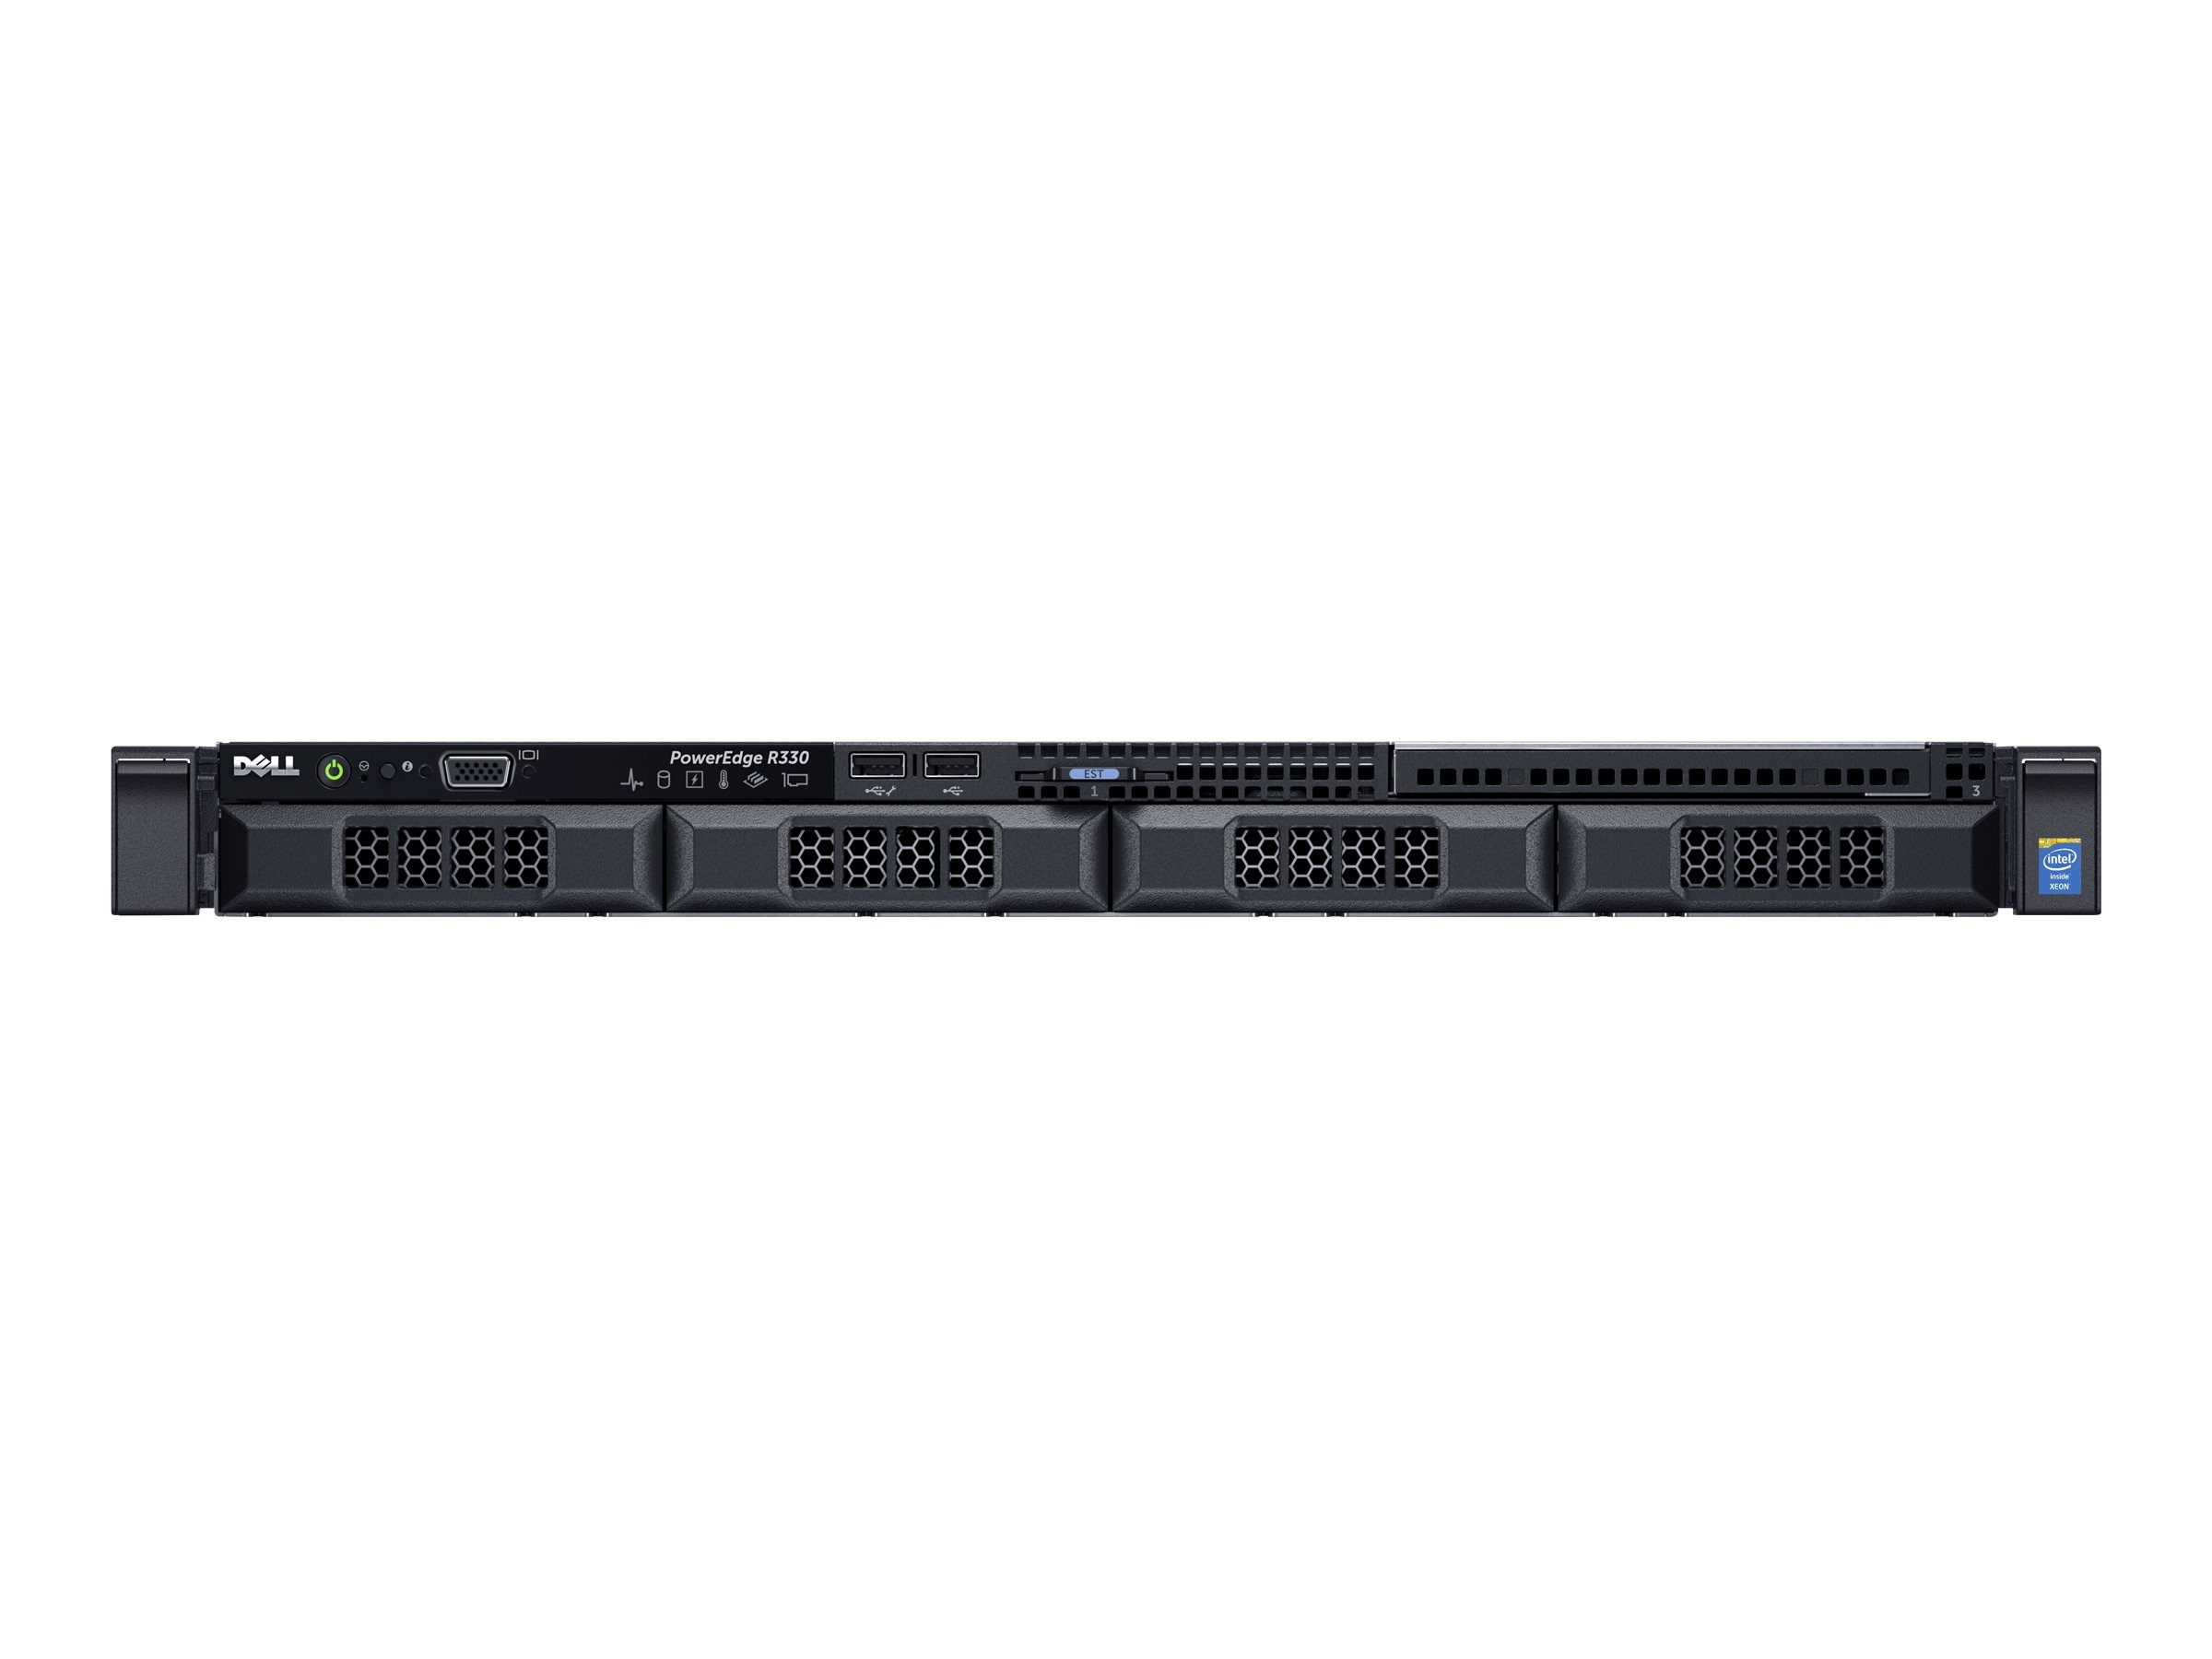 Dell PowerEdge R330 1U RM Xeon QC E3-1240 v5 3.5GHz 8GB 1x1TB 4x3.5 HP Bays H330 DVD 2xGbE 350W, 463-7650